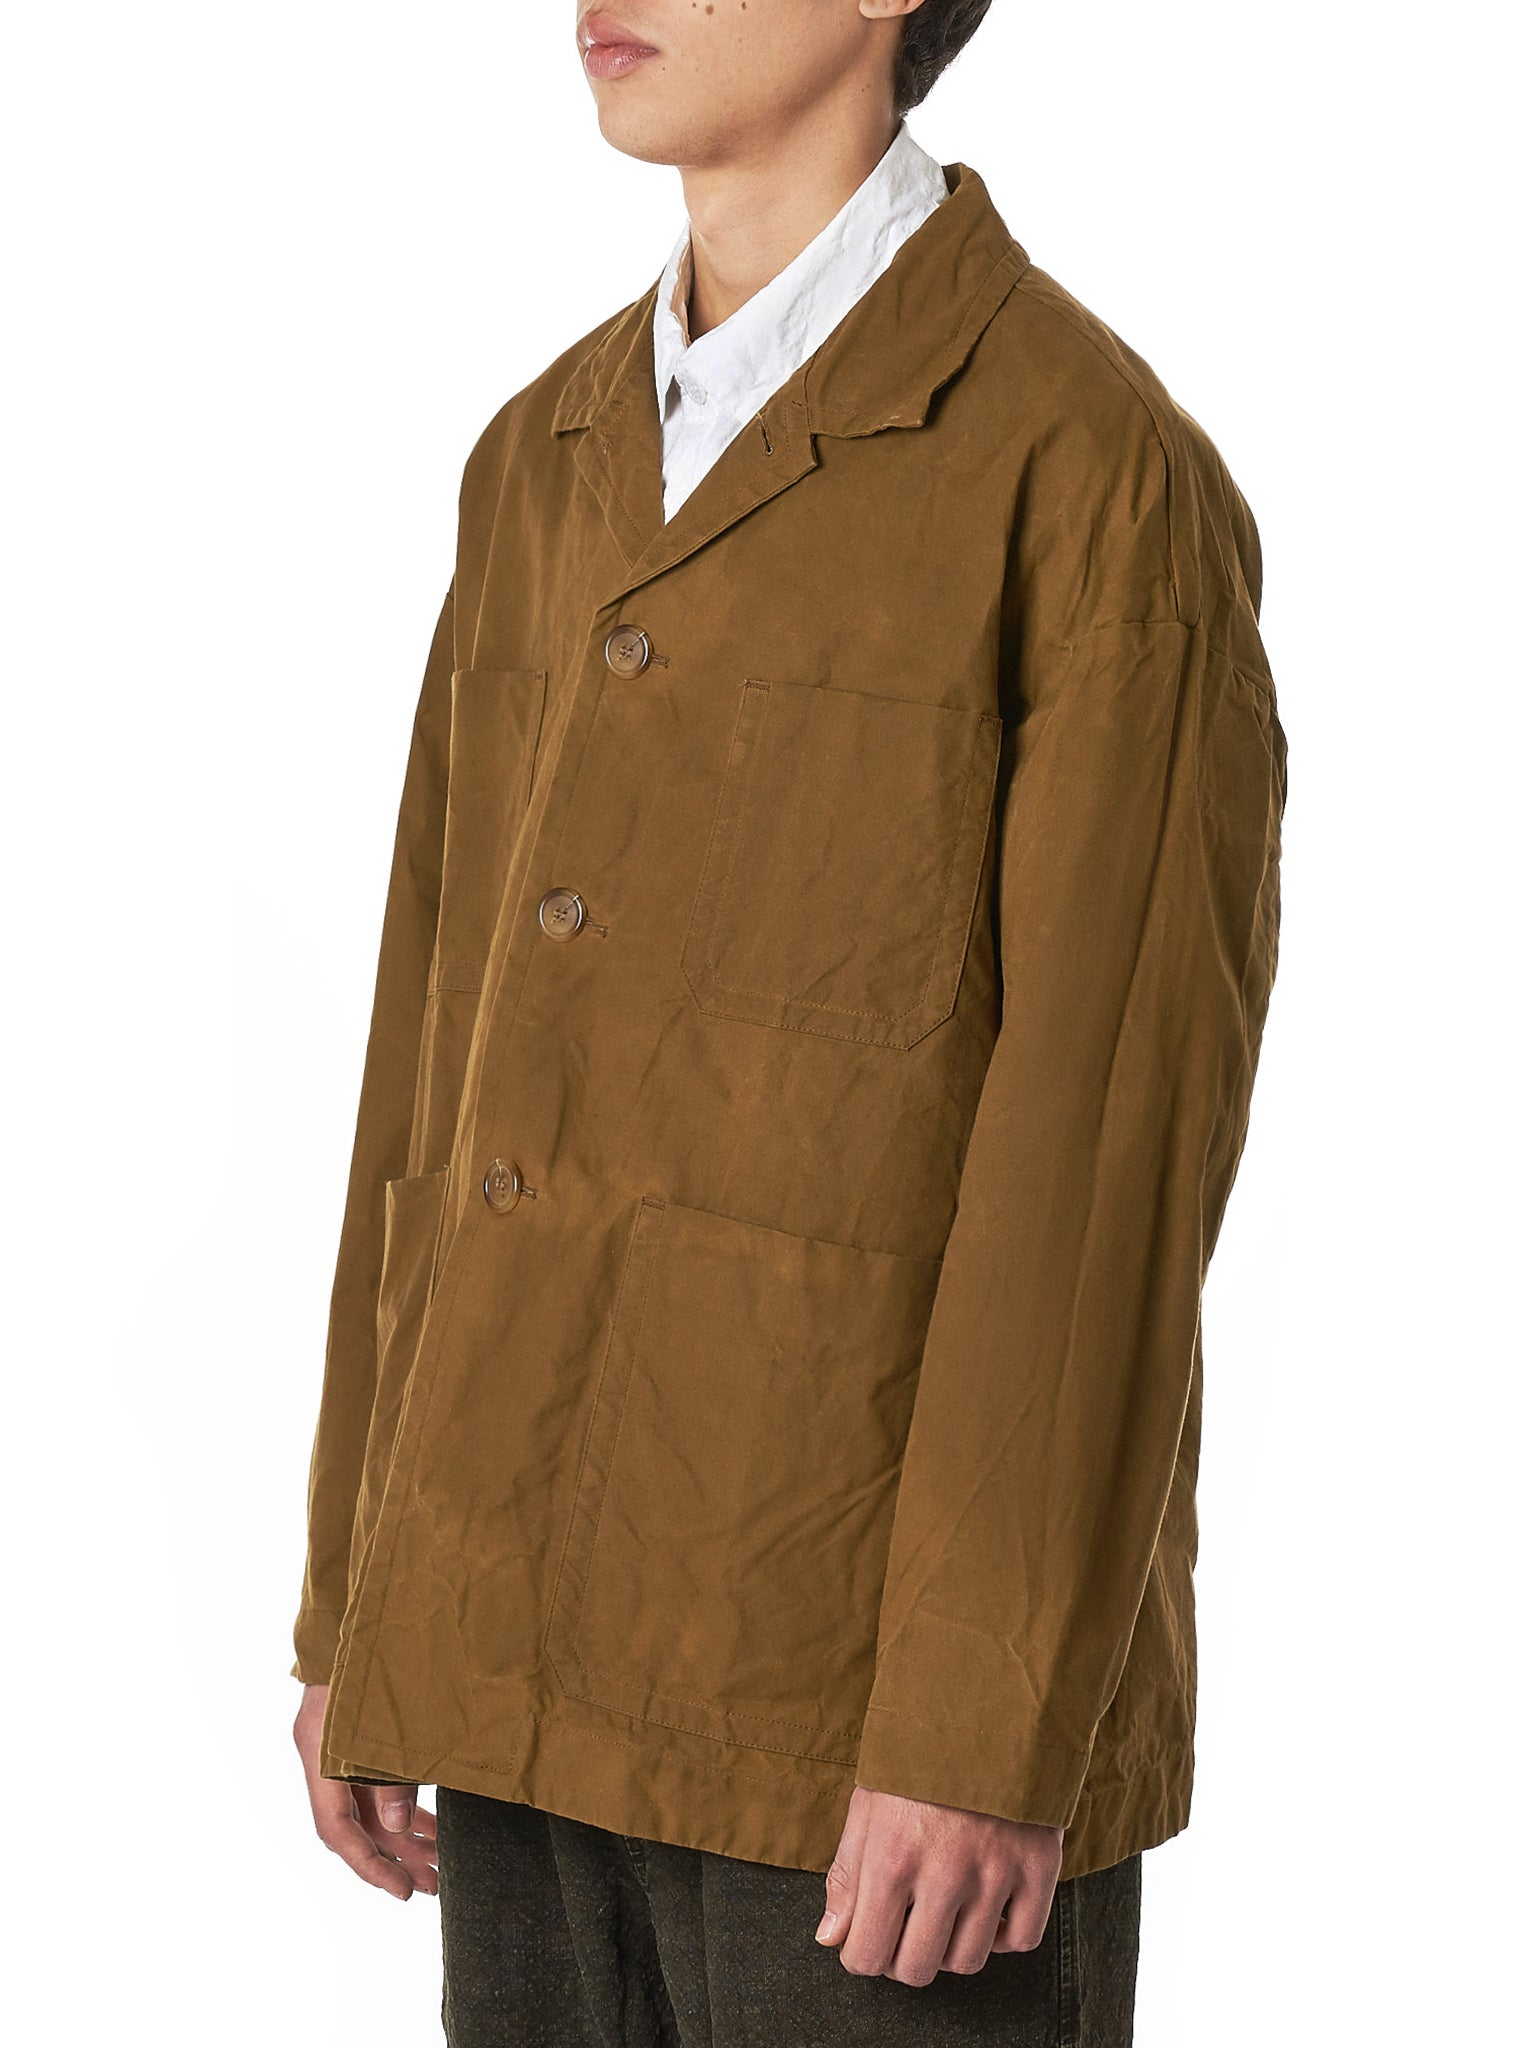 Coated Canvas Jacket (12HV192-BROWN)